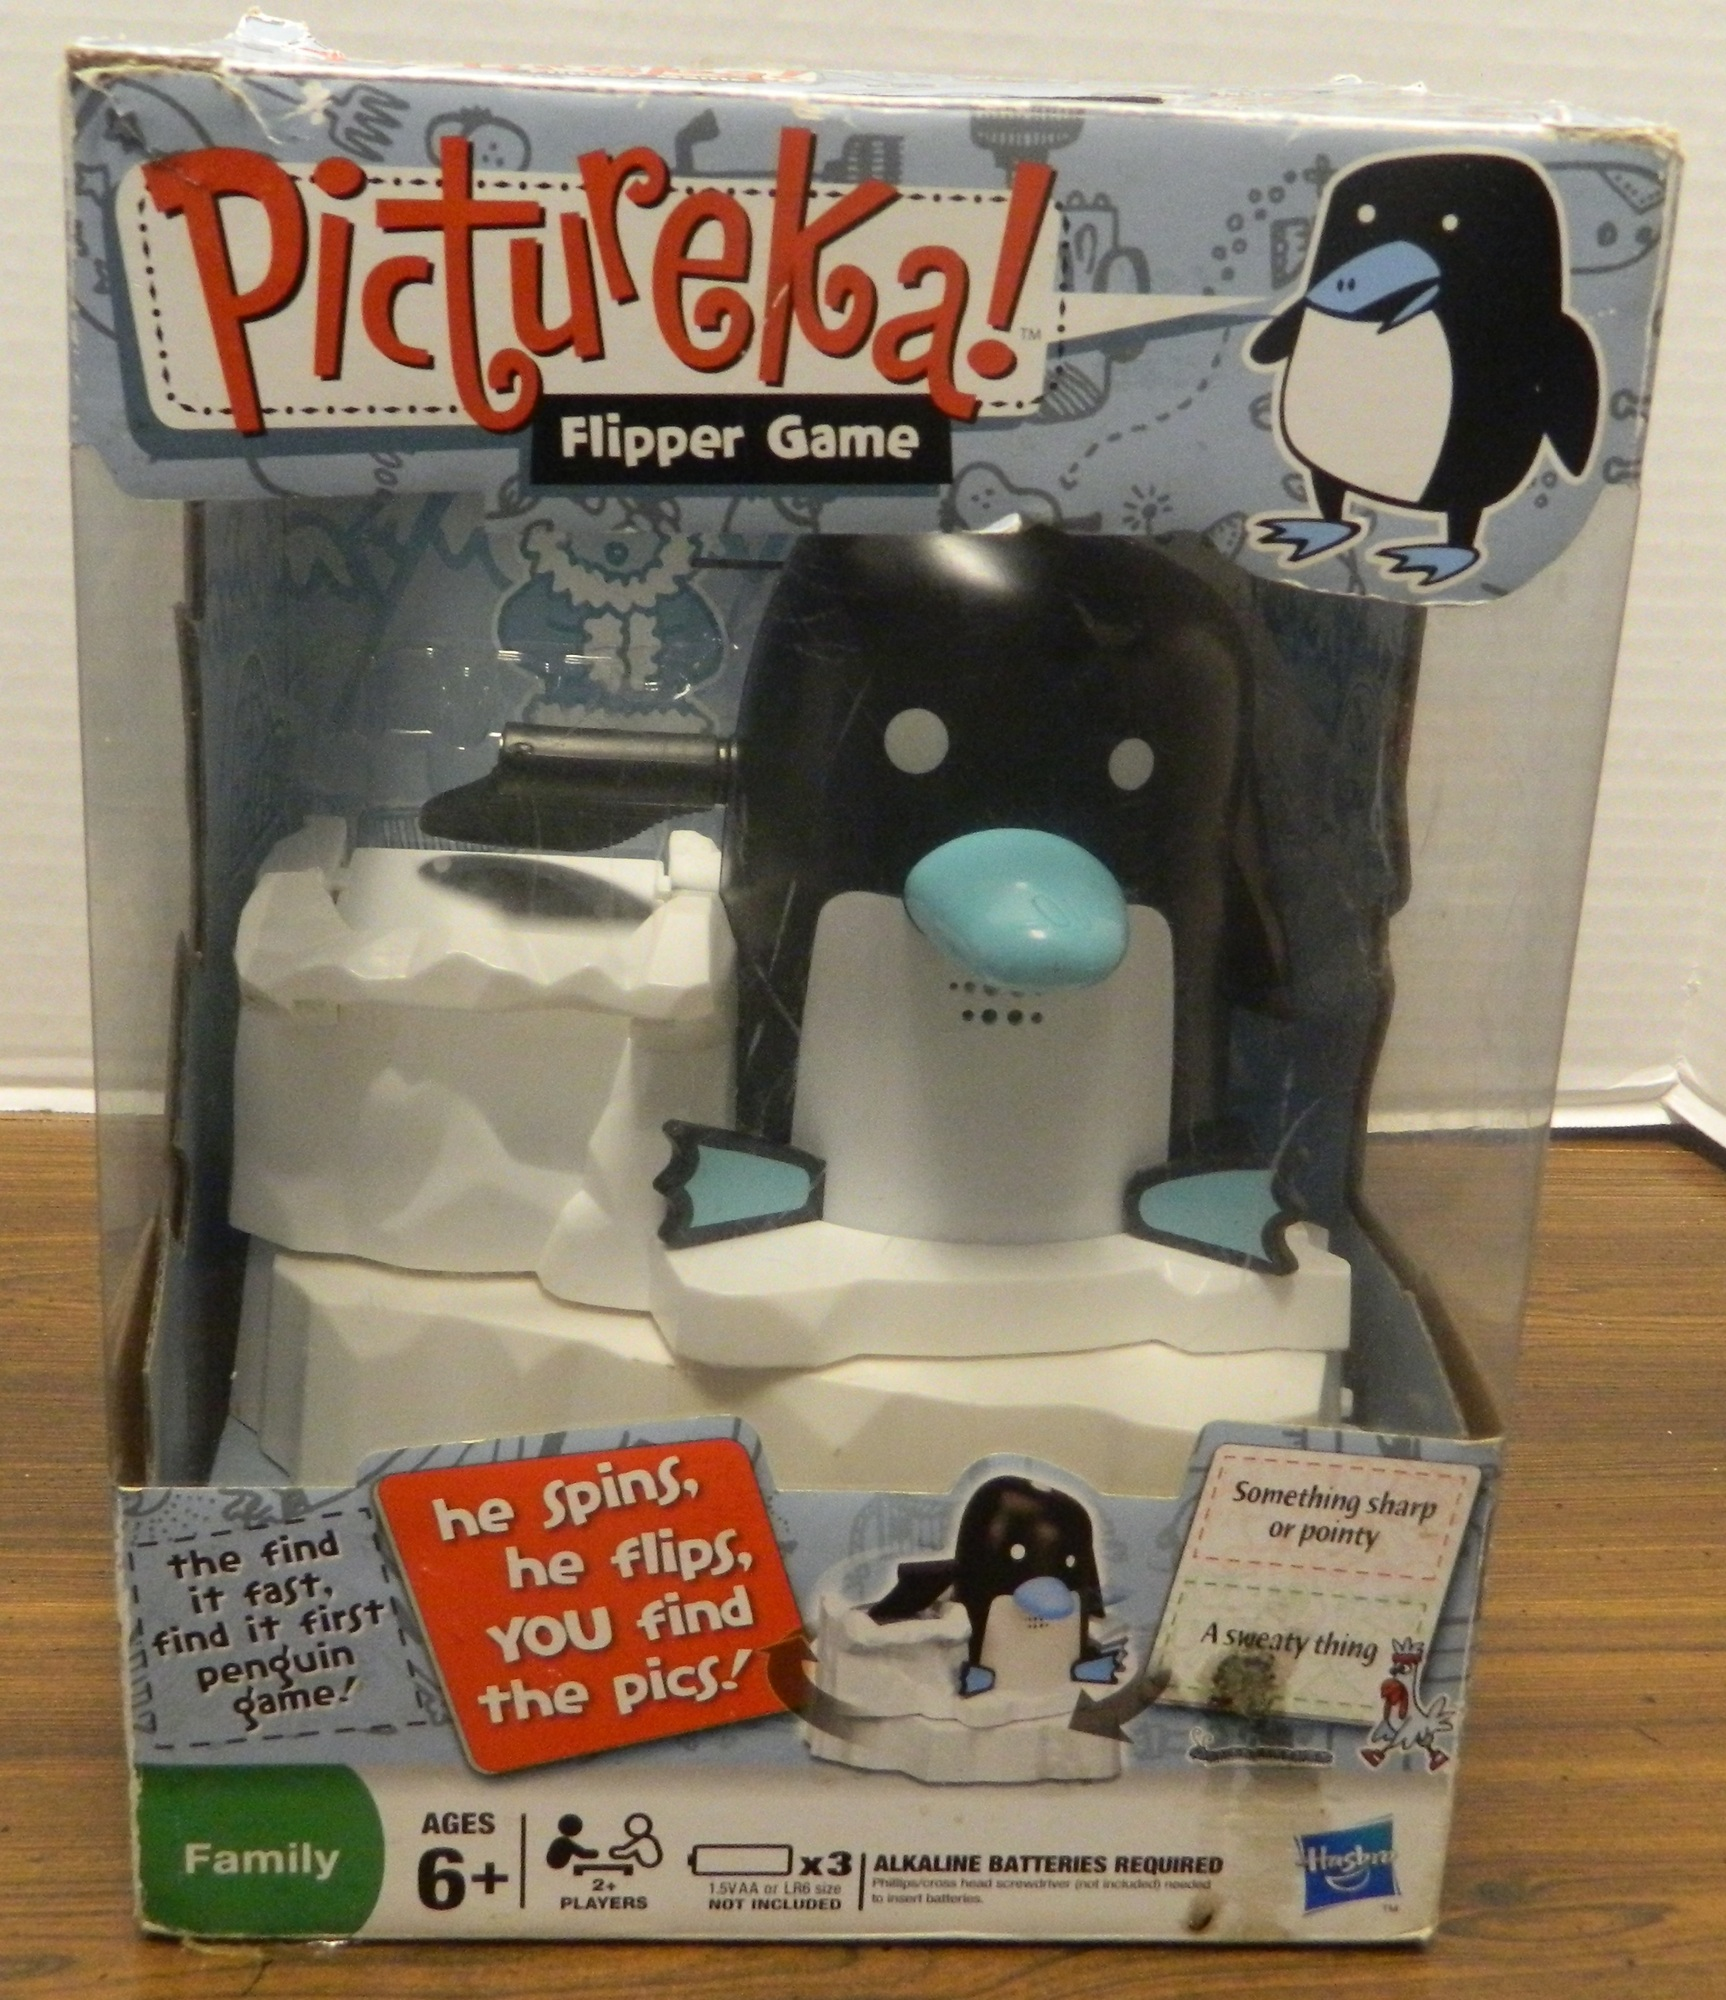 Box for Pictureka Flipper